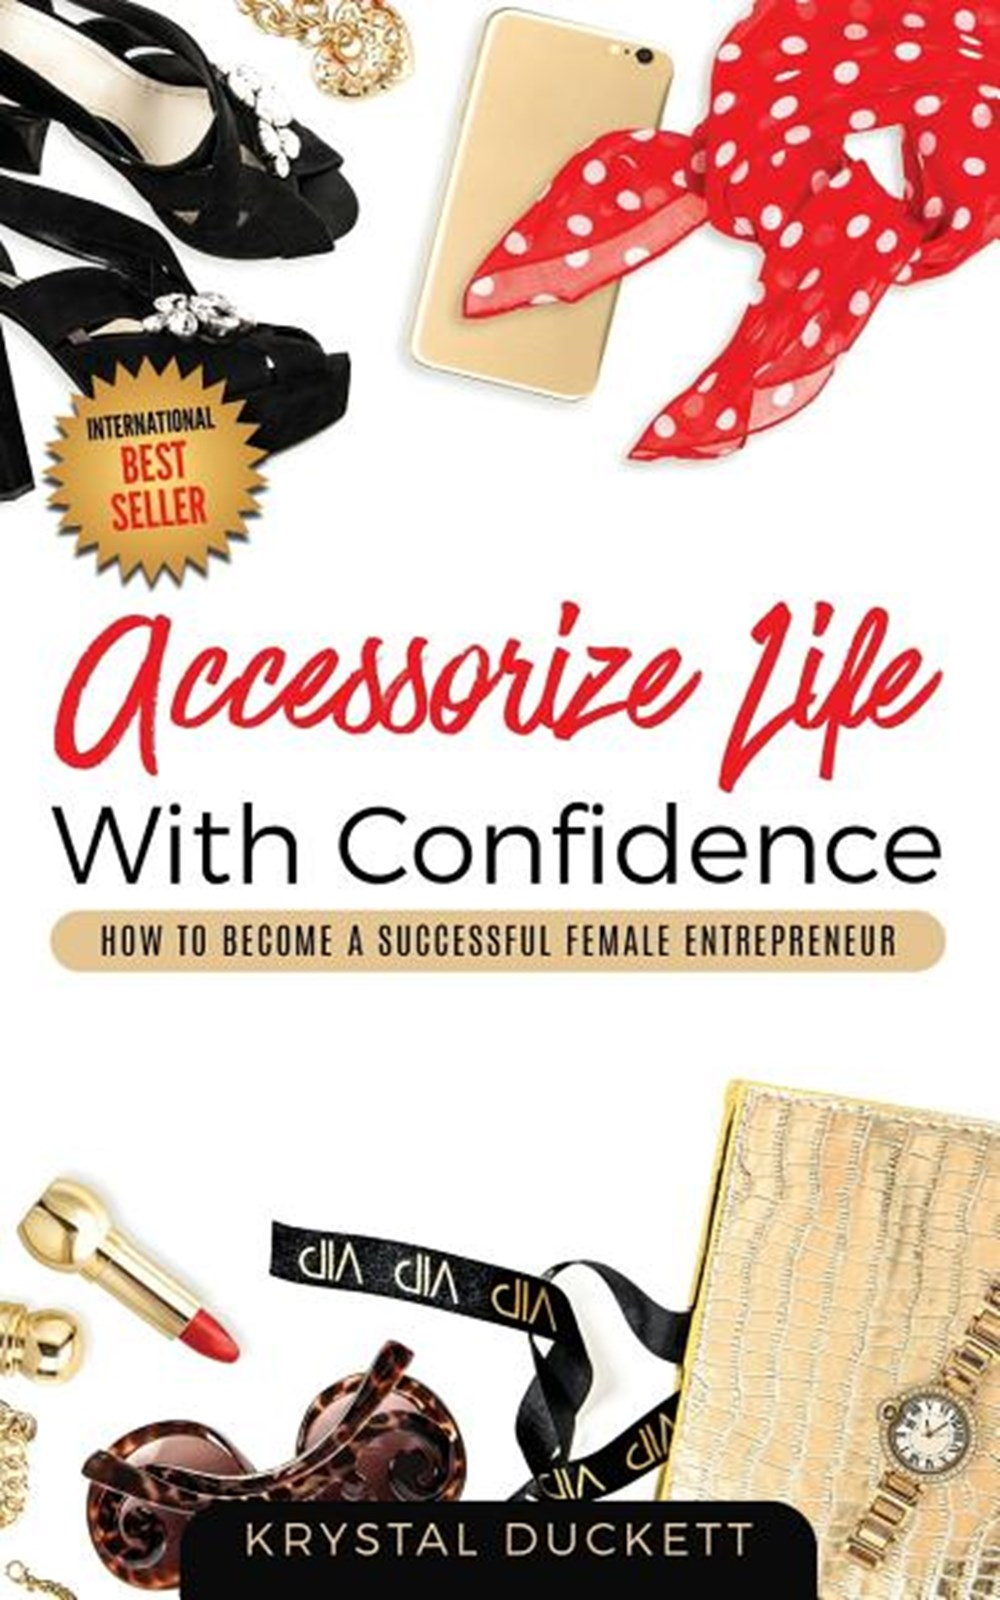 Accessorize Life With Confidence How to Become a Successful Female Entrepreneur